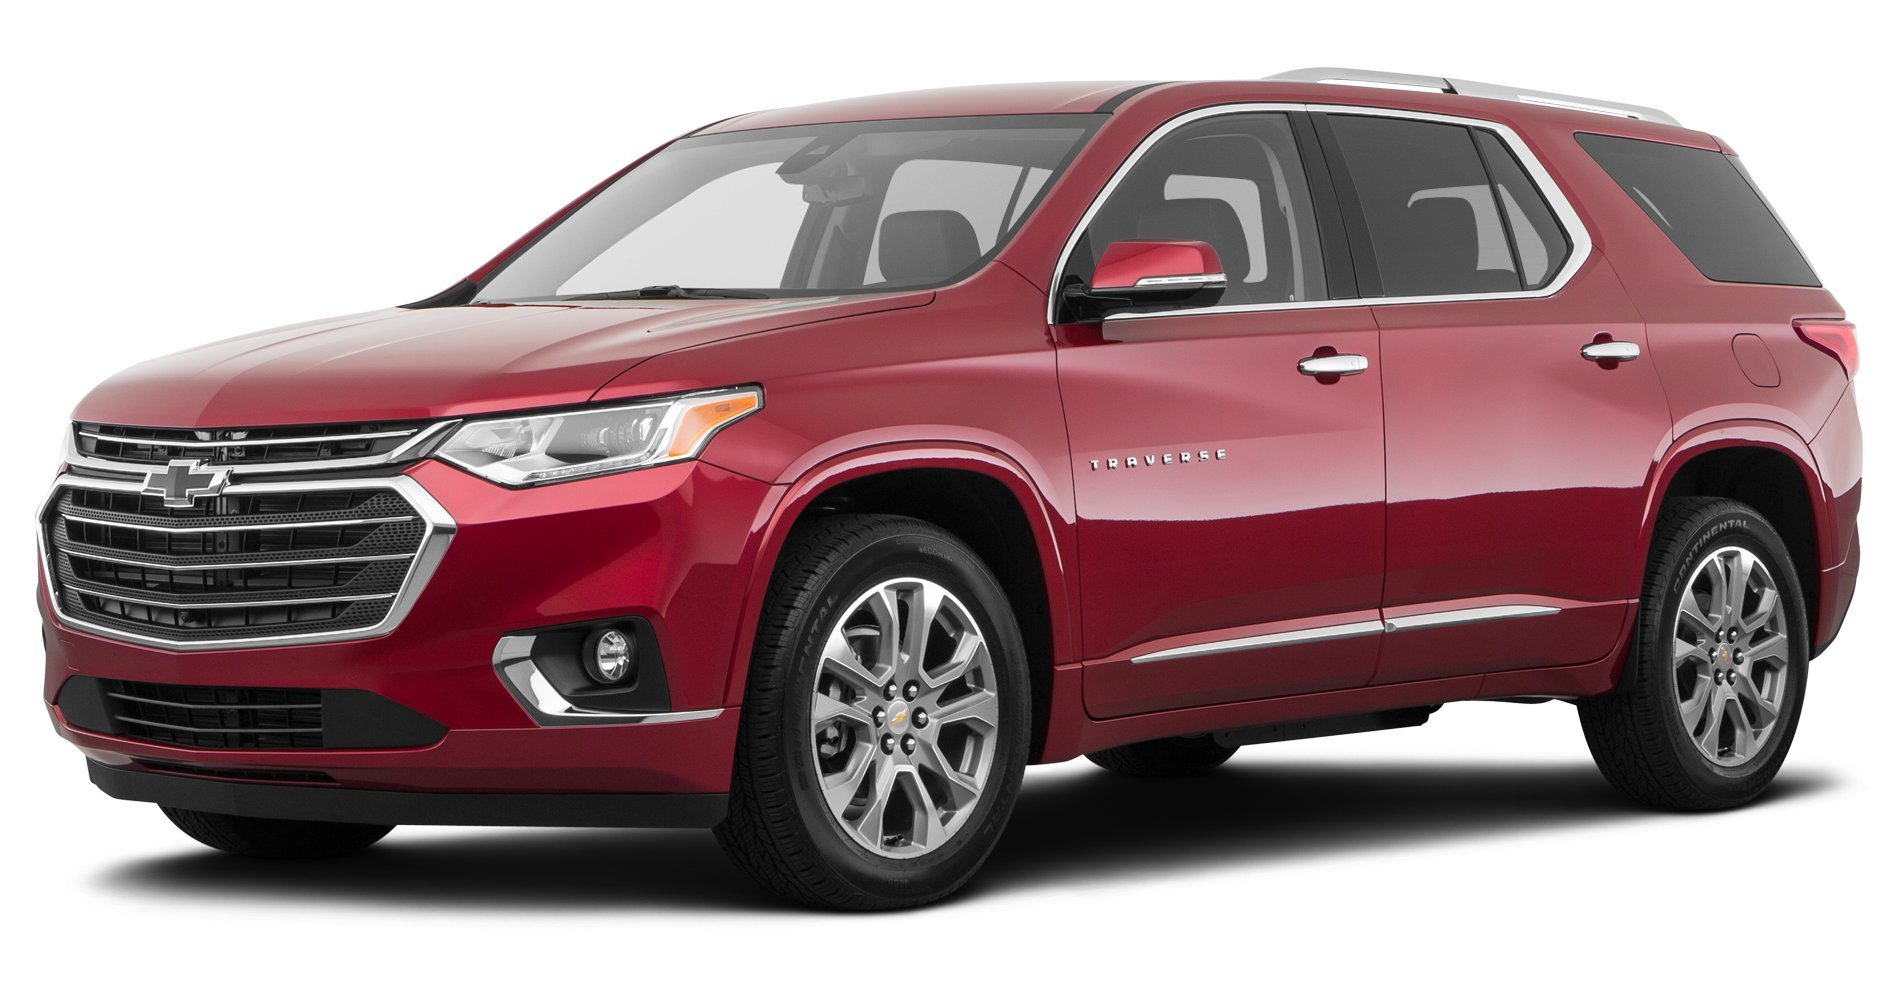 2018 chevrolet traverse reviews images and specs vehicles. Black Bedroom Furniture Sets. Home Design Ideas